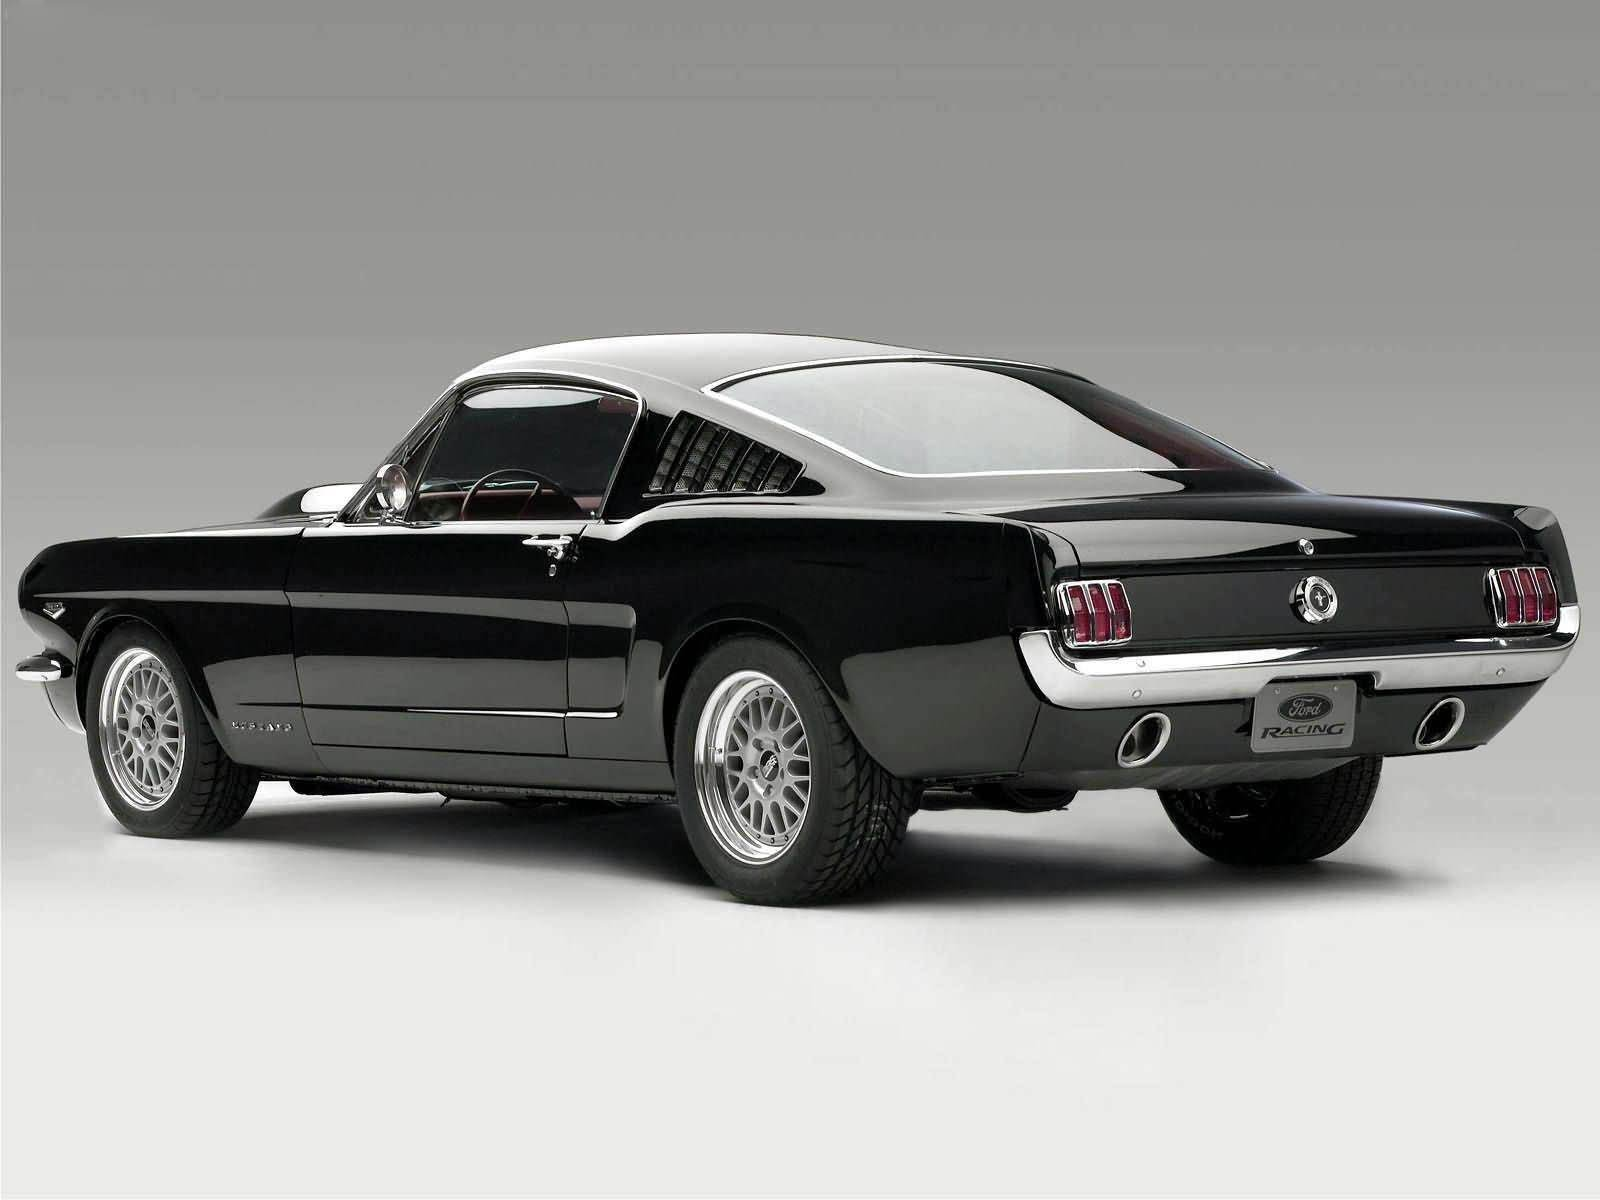 ford mustang fastback 1966-1600x1200